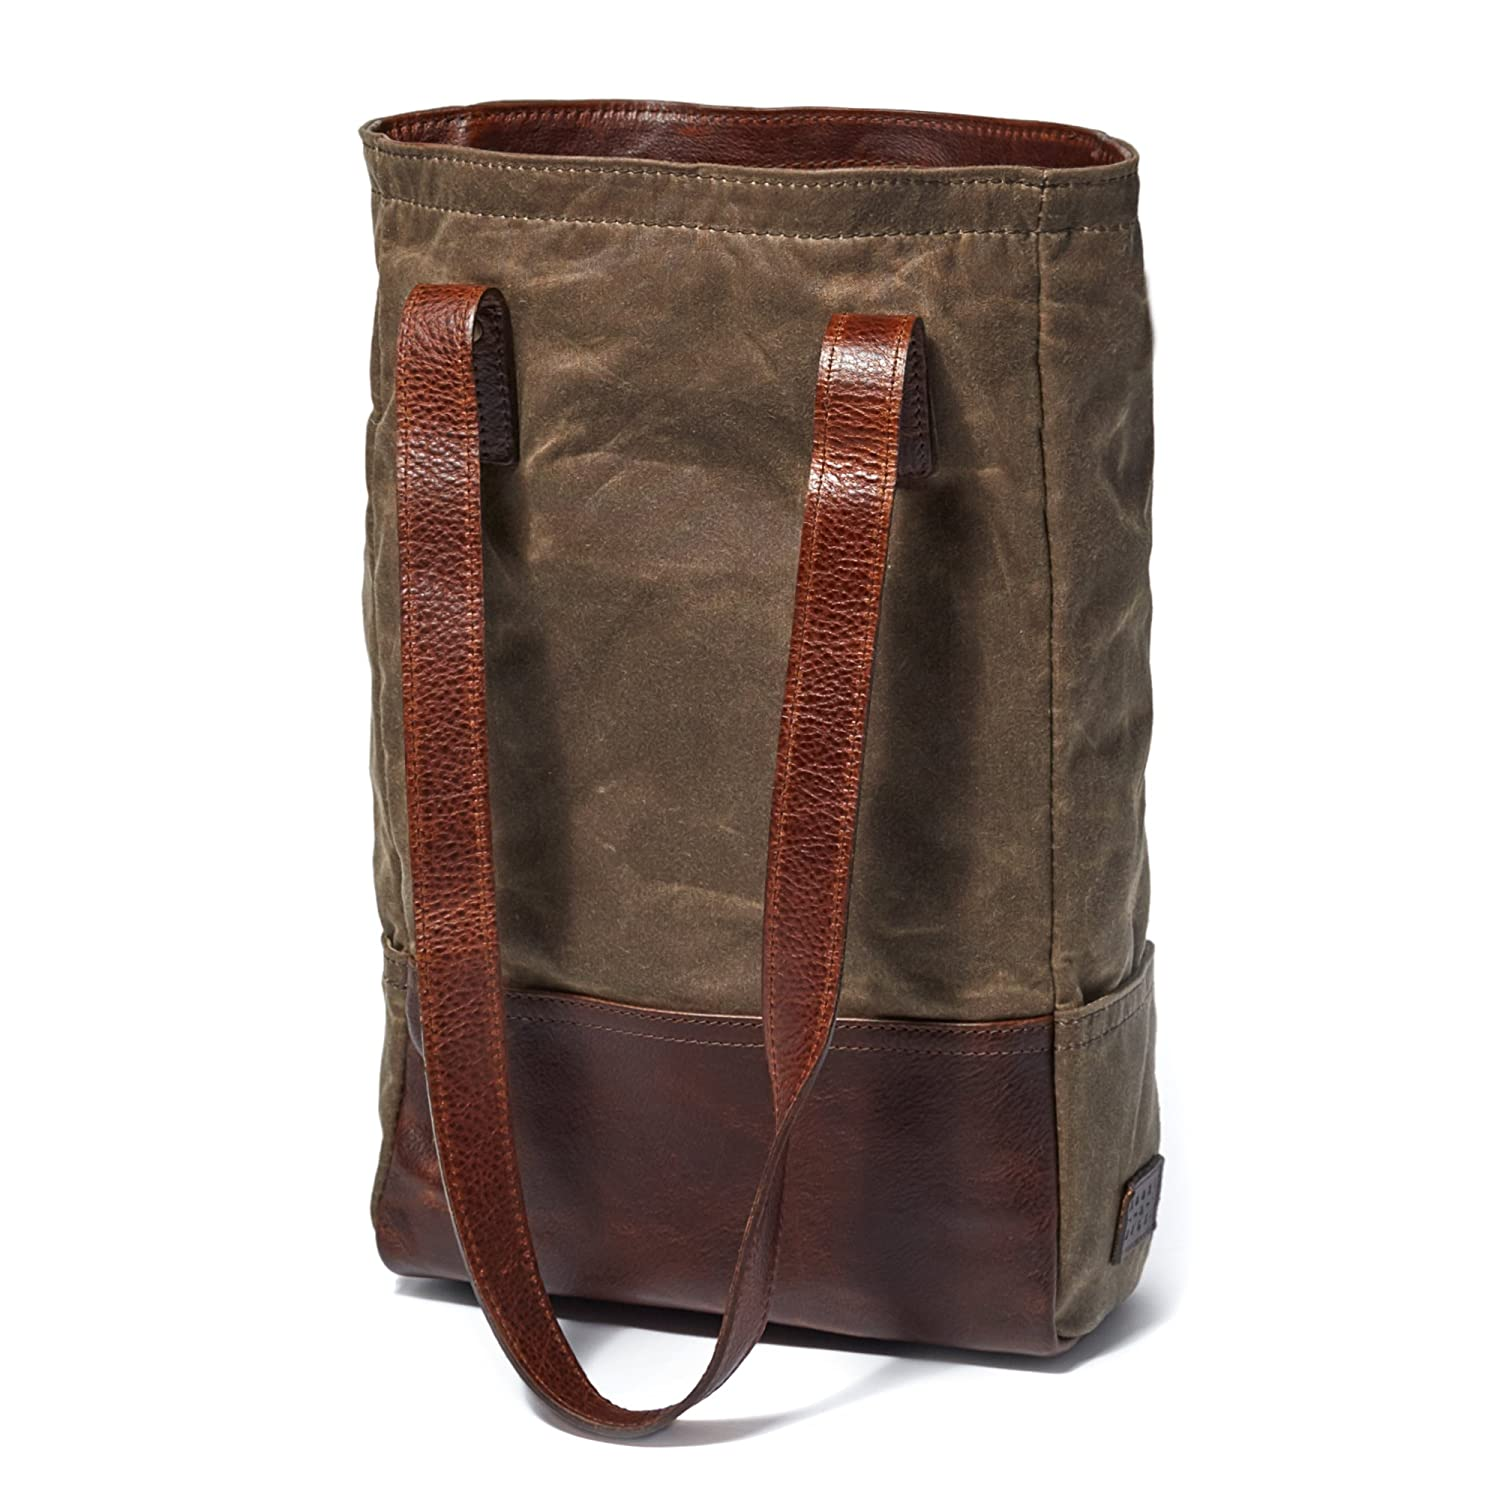 Moore and Giles Waxwear Rangertan Petty Wine Bottle Tote Moores and Giles .